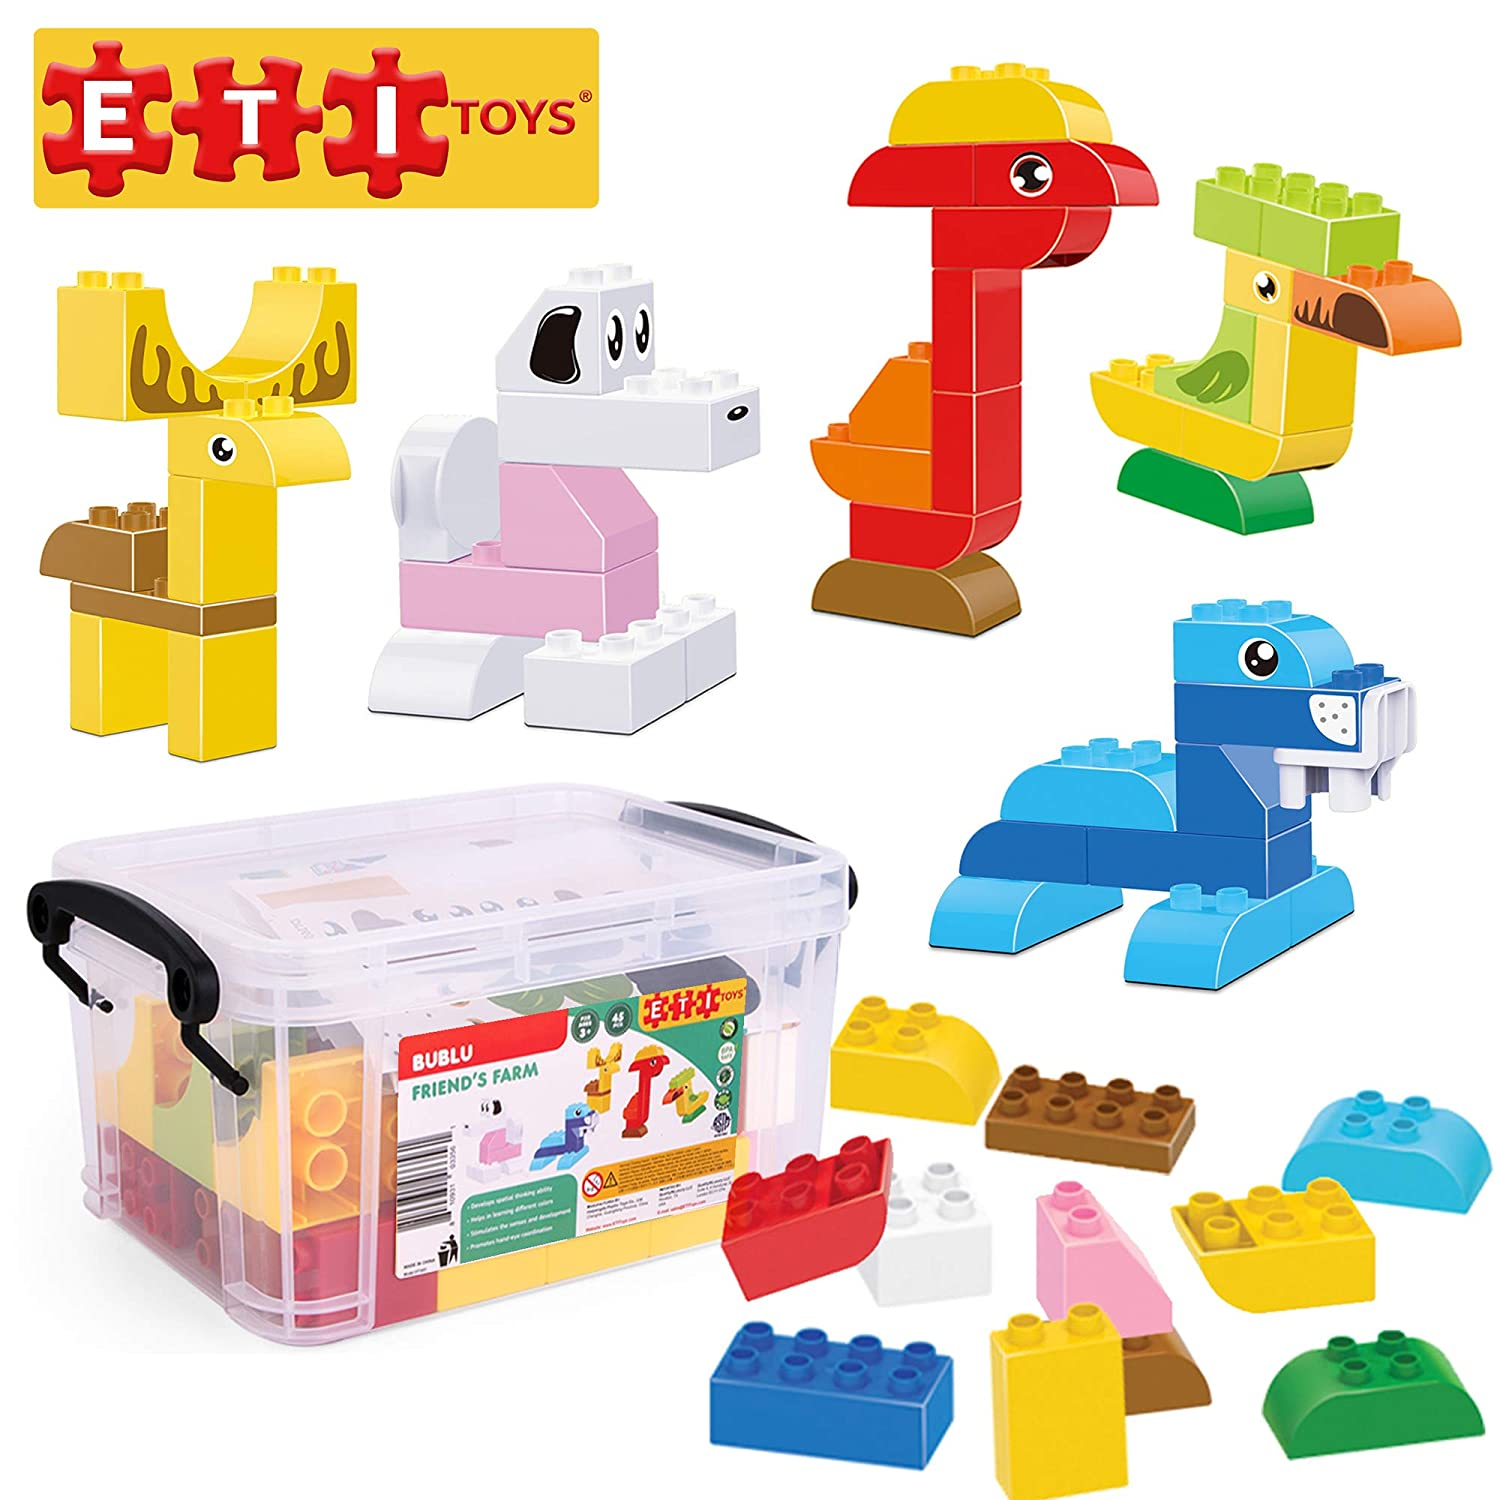 Creative Skills Development Fortress with Farm Animals ETI Toys 5 Year Old Boys and Girls 4 Non-Toxic Toy for 3 Best Gift 60 Piece Bublu Animal Story Building Blocks; Build Talking Sage Tree